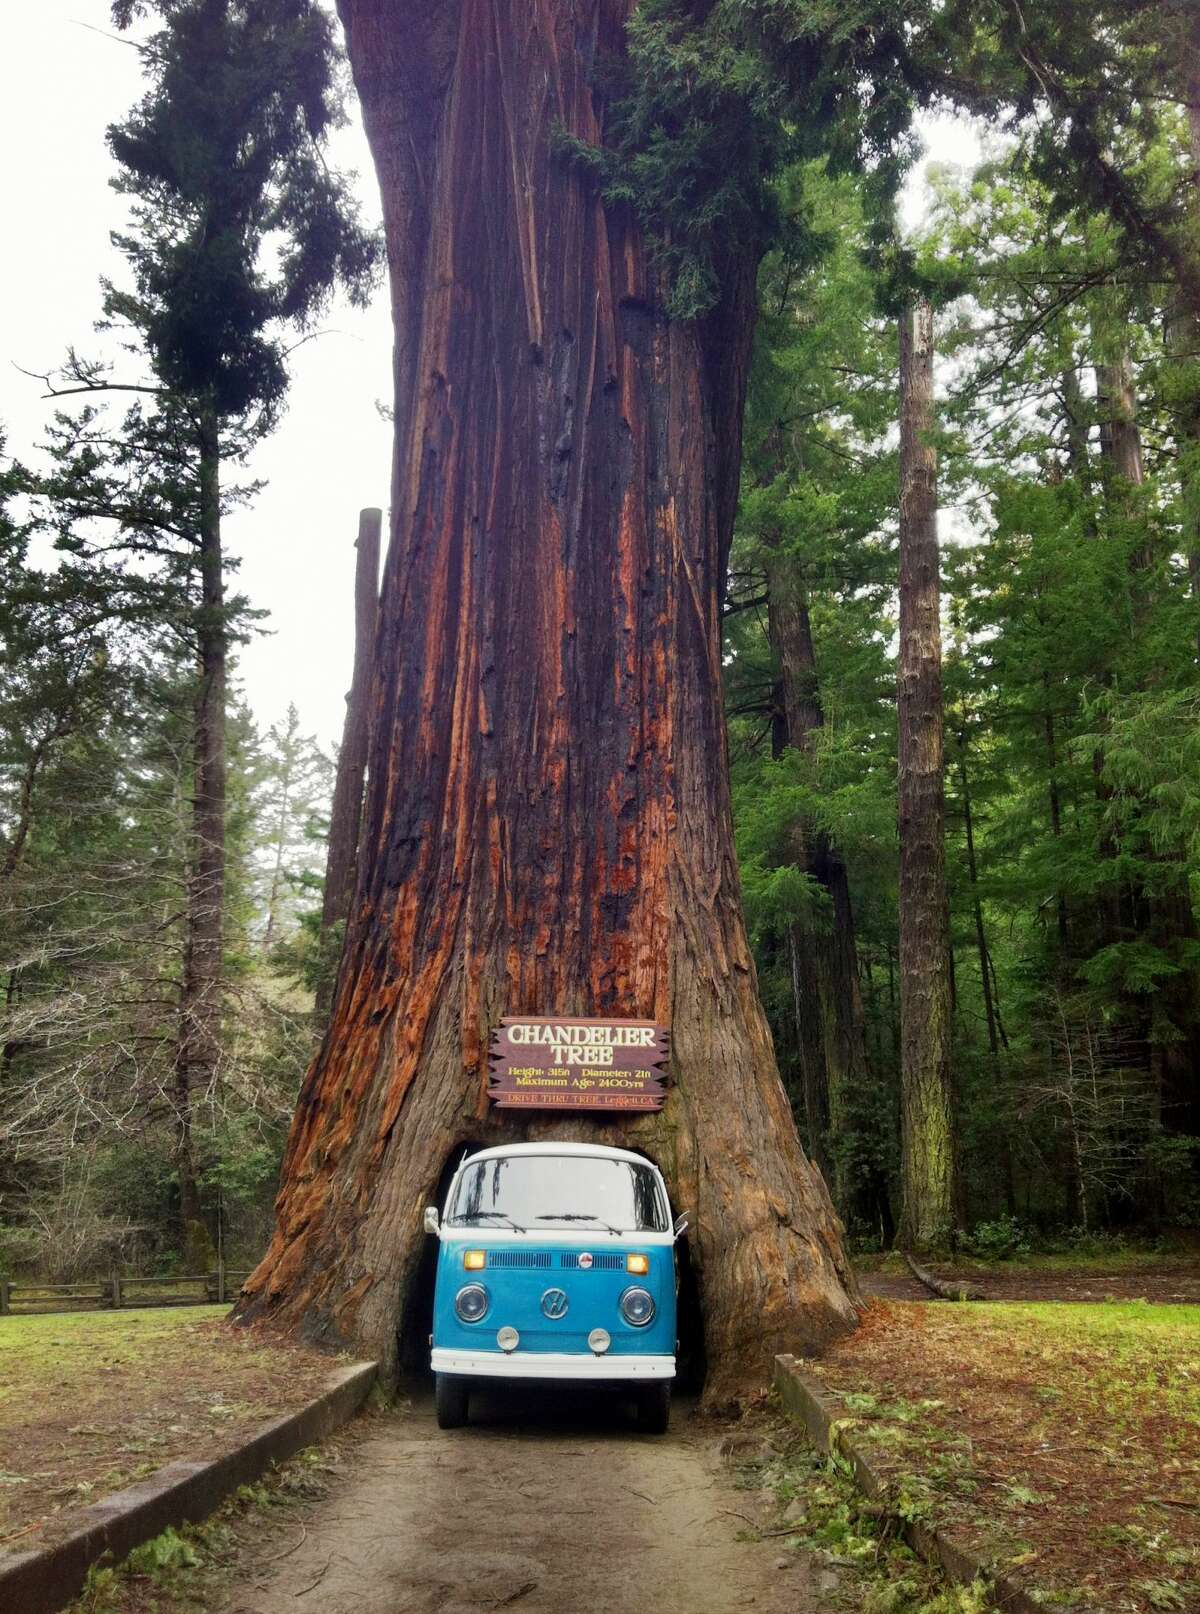 The Chandelier Tree is 100 miles south of Eureka in Leggett, California.